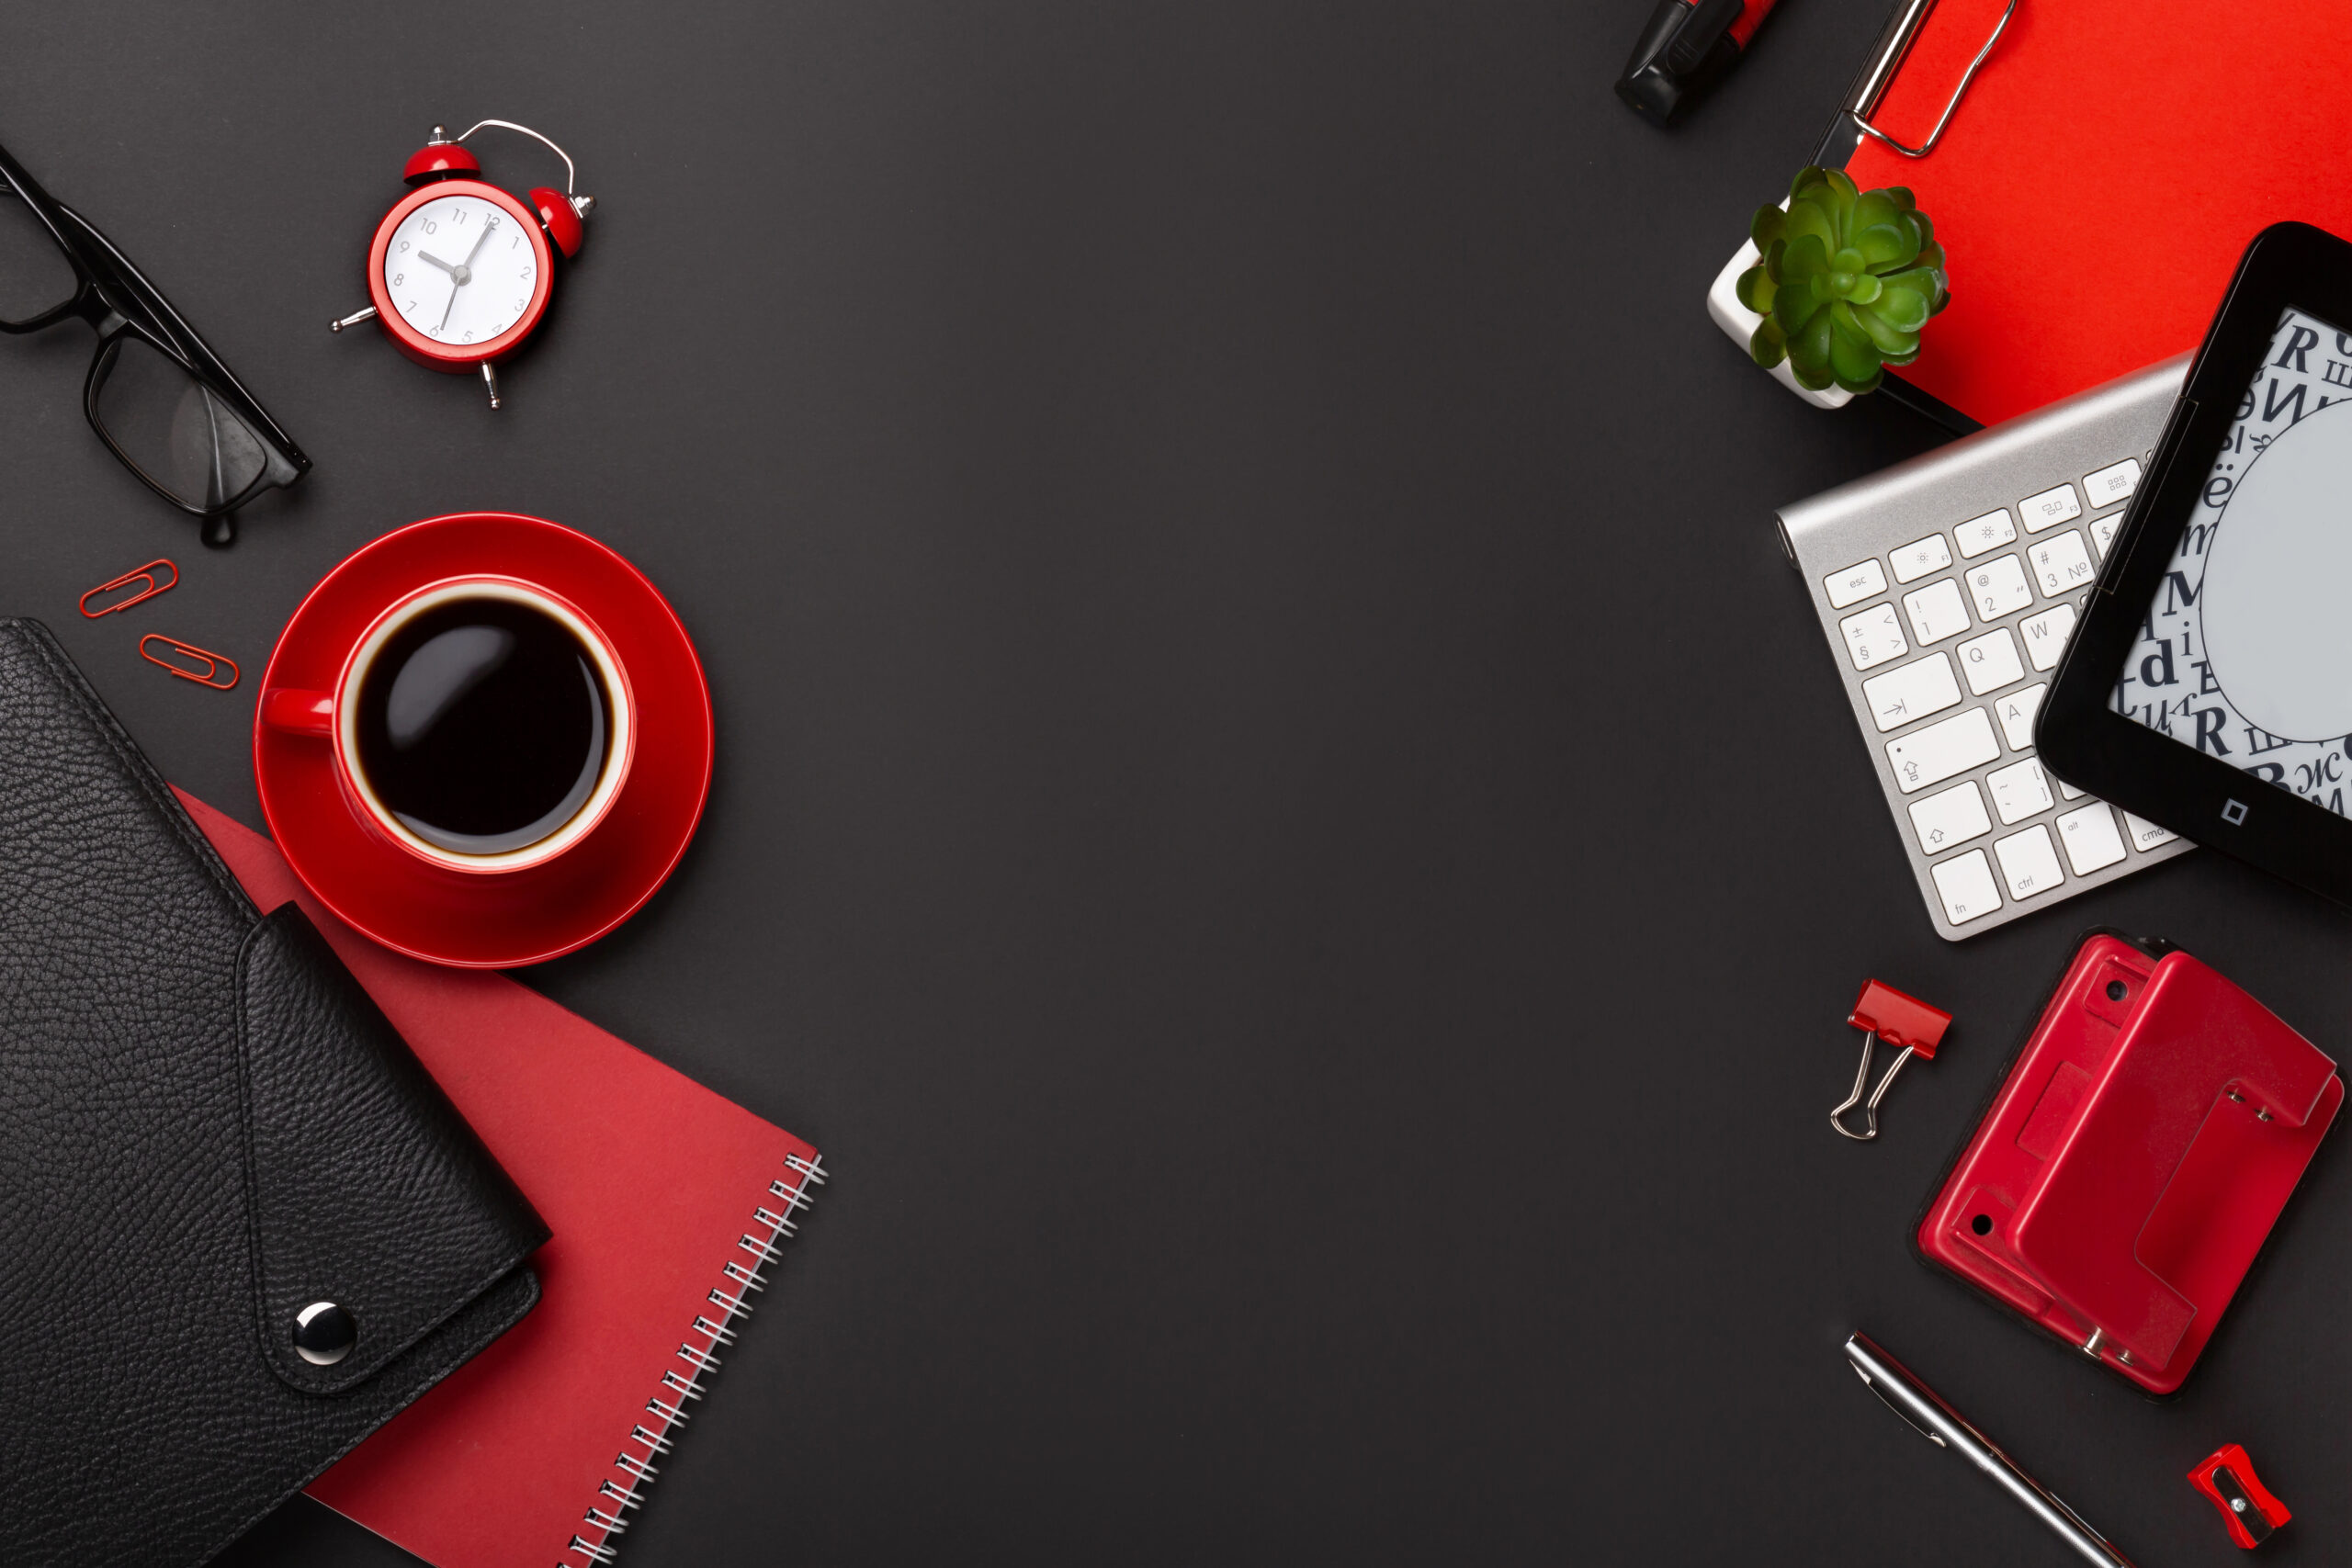 Black background red coffee cup notepad alarm clock flower diary scores keyboard on the table. Top view with copy space.